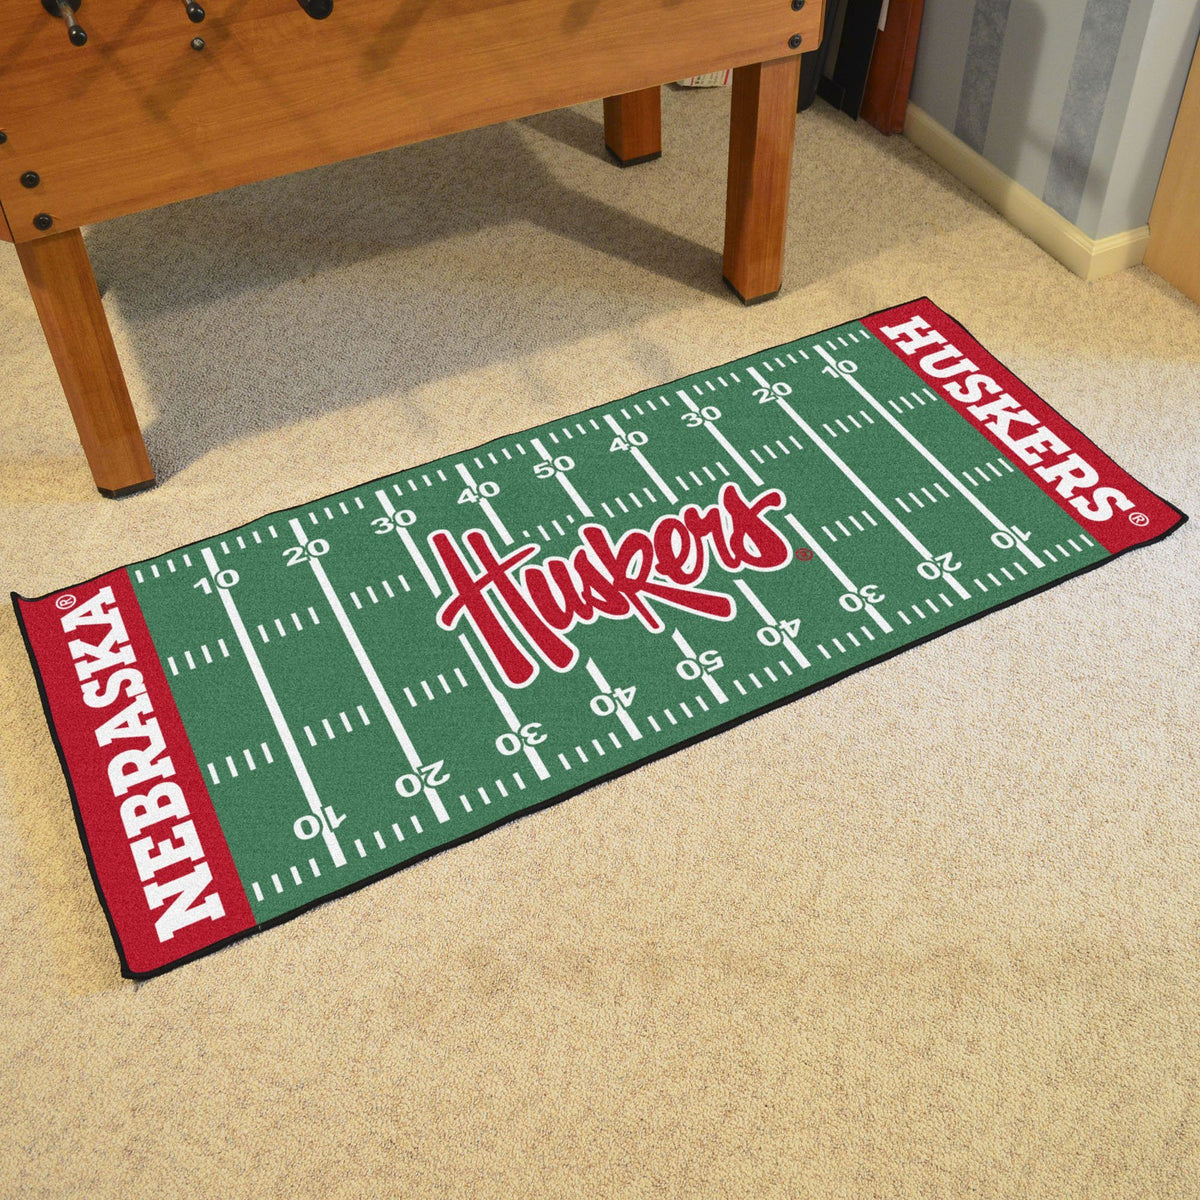 Collegiate - Football Field Runner Collegiate Mats, Rectangular Mats, Football Field Runner, Collegiate, Home Fan Mats Nebraska 3